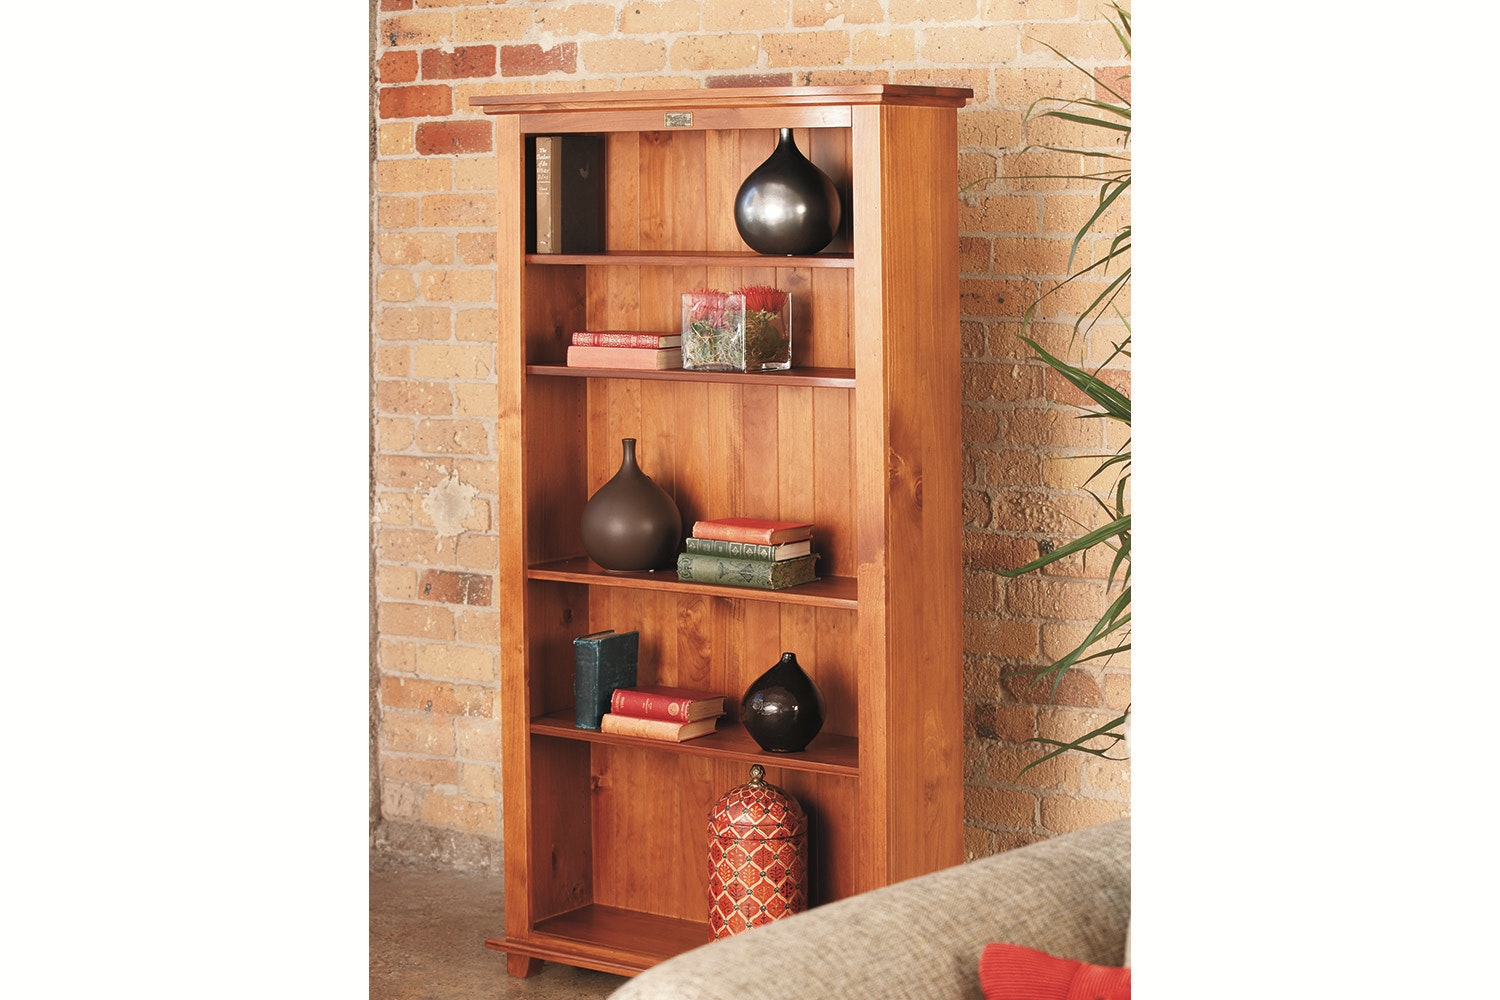 Marvelous photograph of Ferngrove Bookcase 1800 x 900mm Coastwood Furniture Harvey  with #9E882D color and 1500x1000 pixels